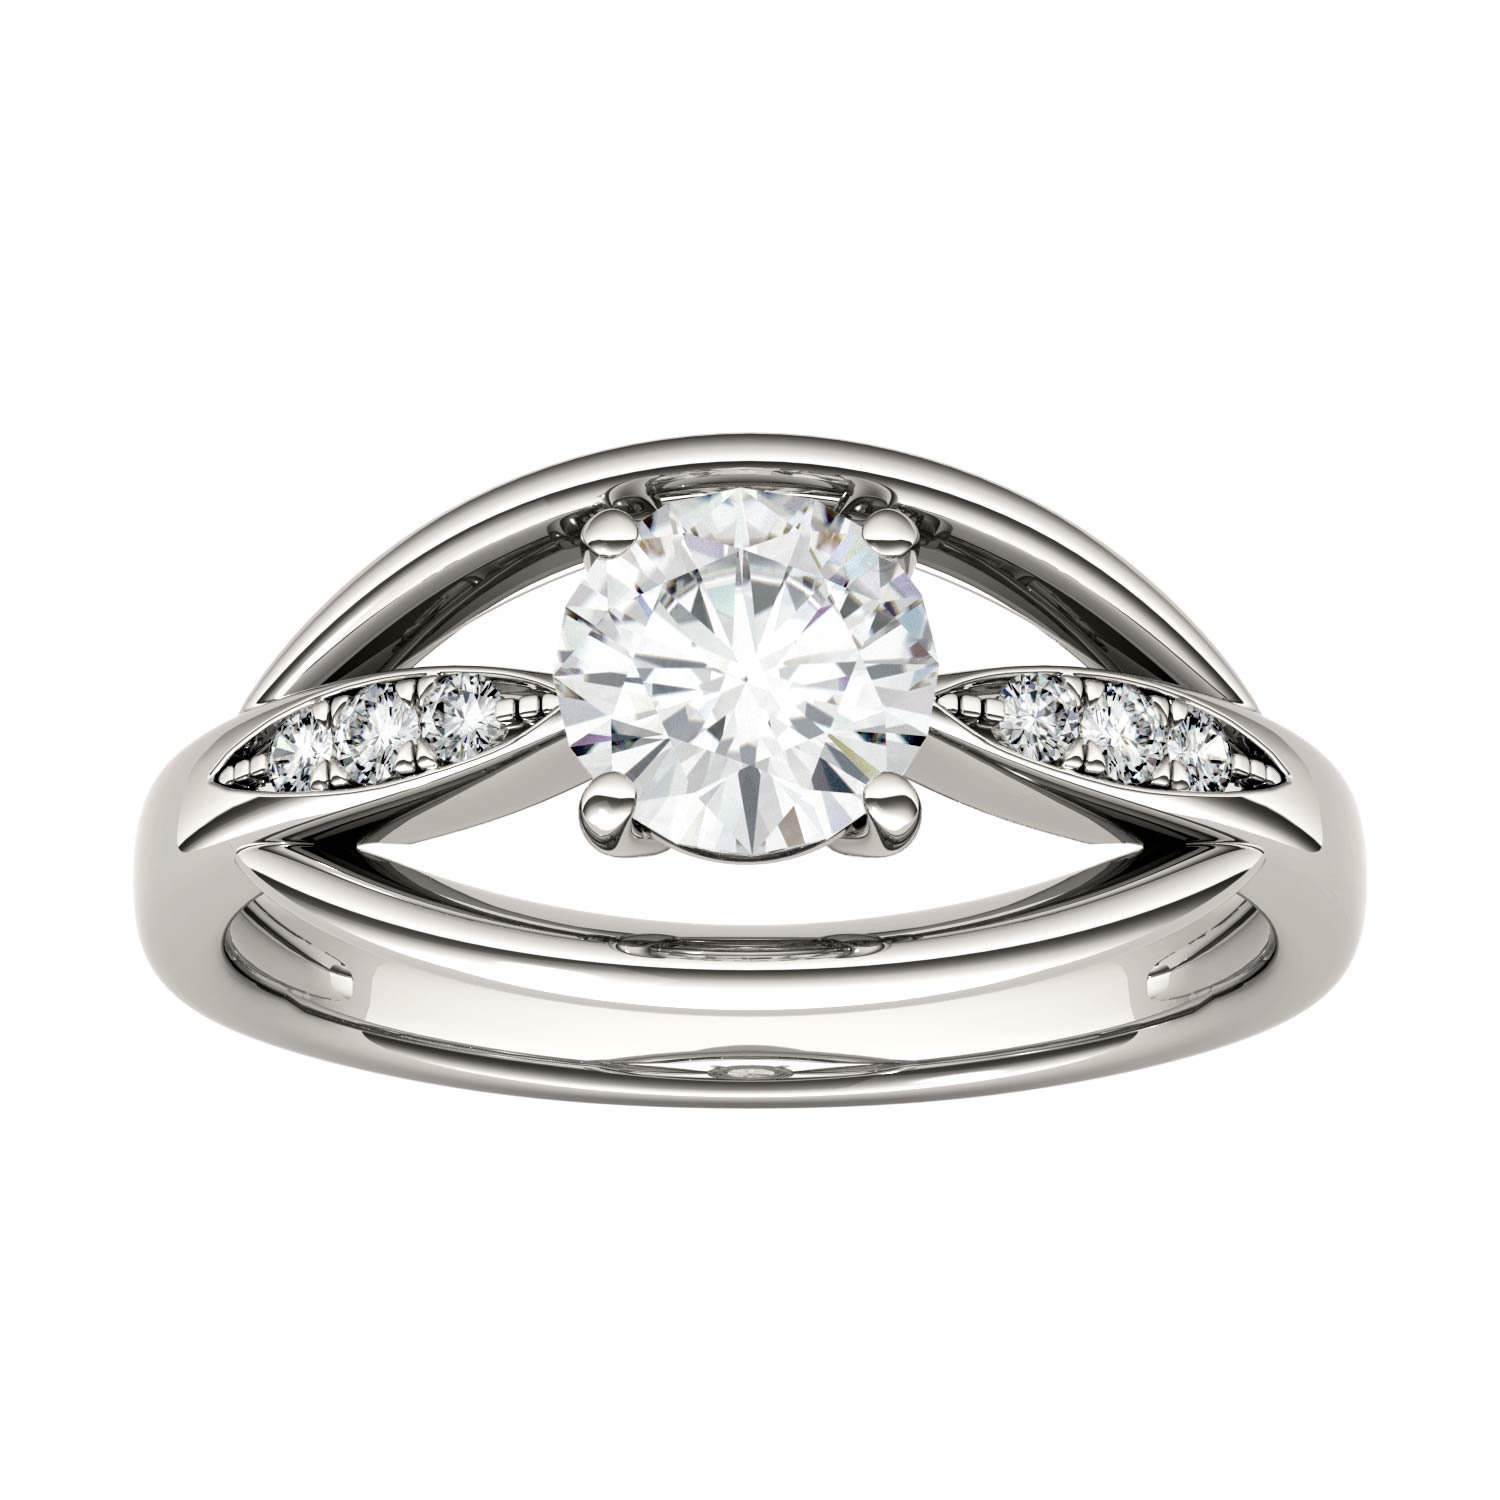 Forever Brilliant Round 6.0mm Moissanite Ring-size 6, 0.87cttw DEW by Charles & Colvard